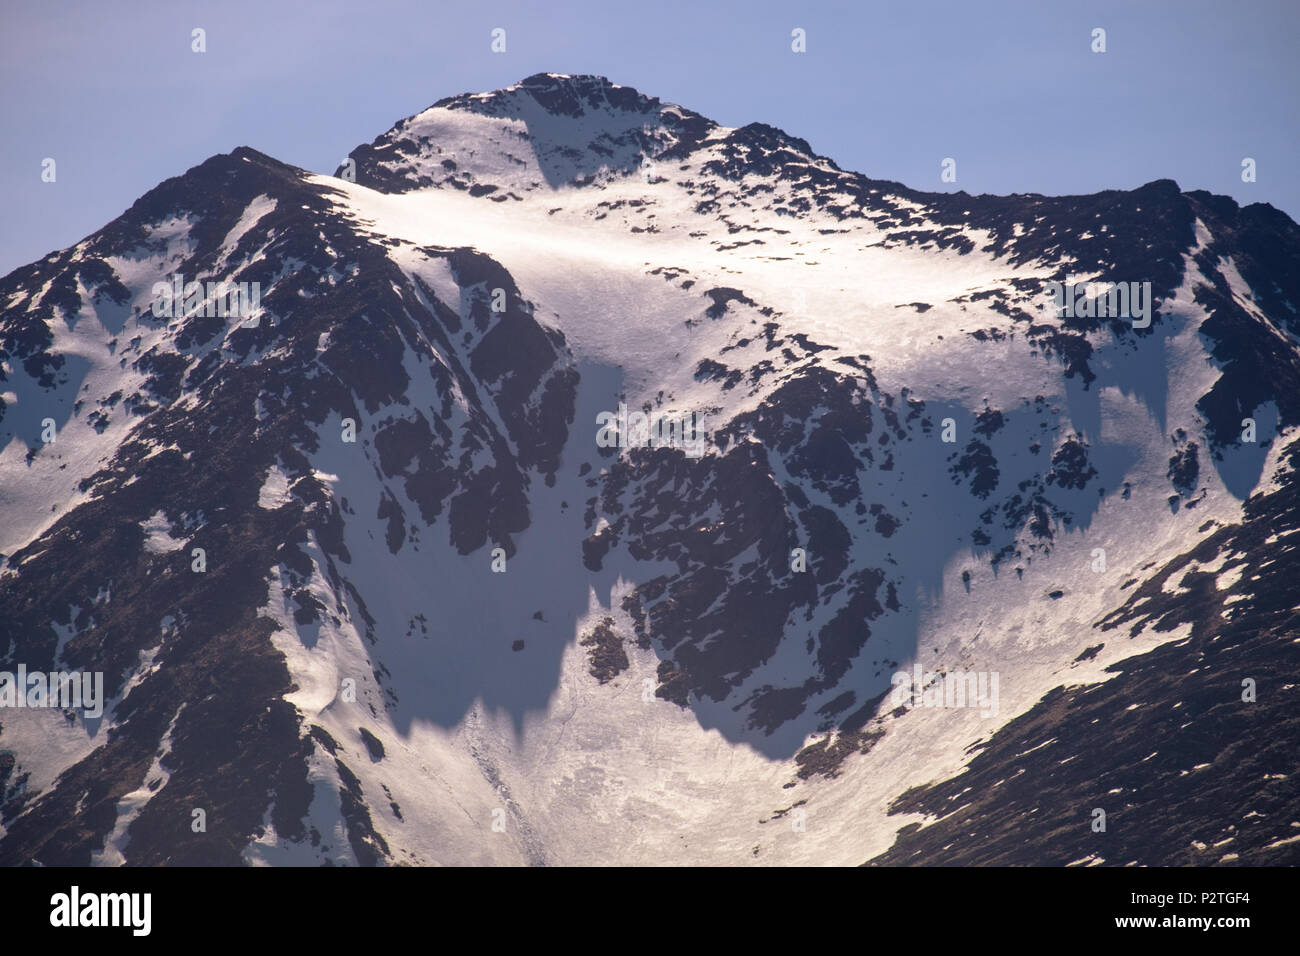 This is a mountain summit you can see from the city of Ushuaia. It belongs to the Martial mountains. Snow has fallen and sticks to the mountain. Stock Photo